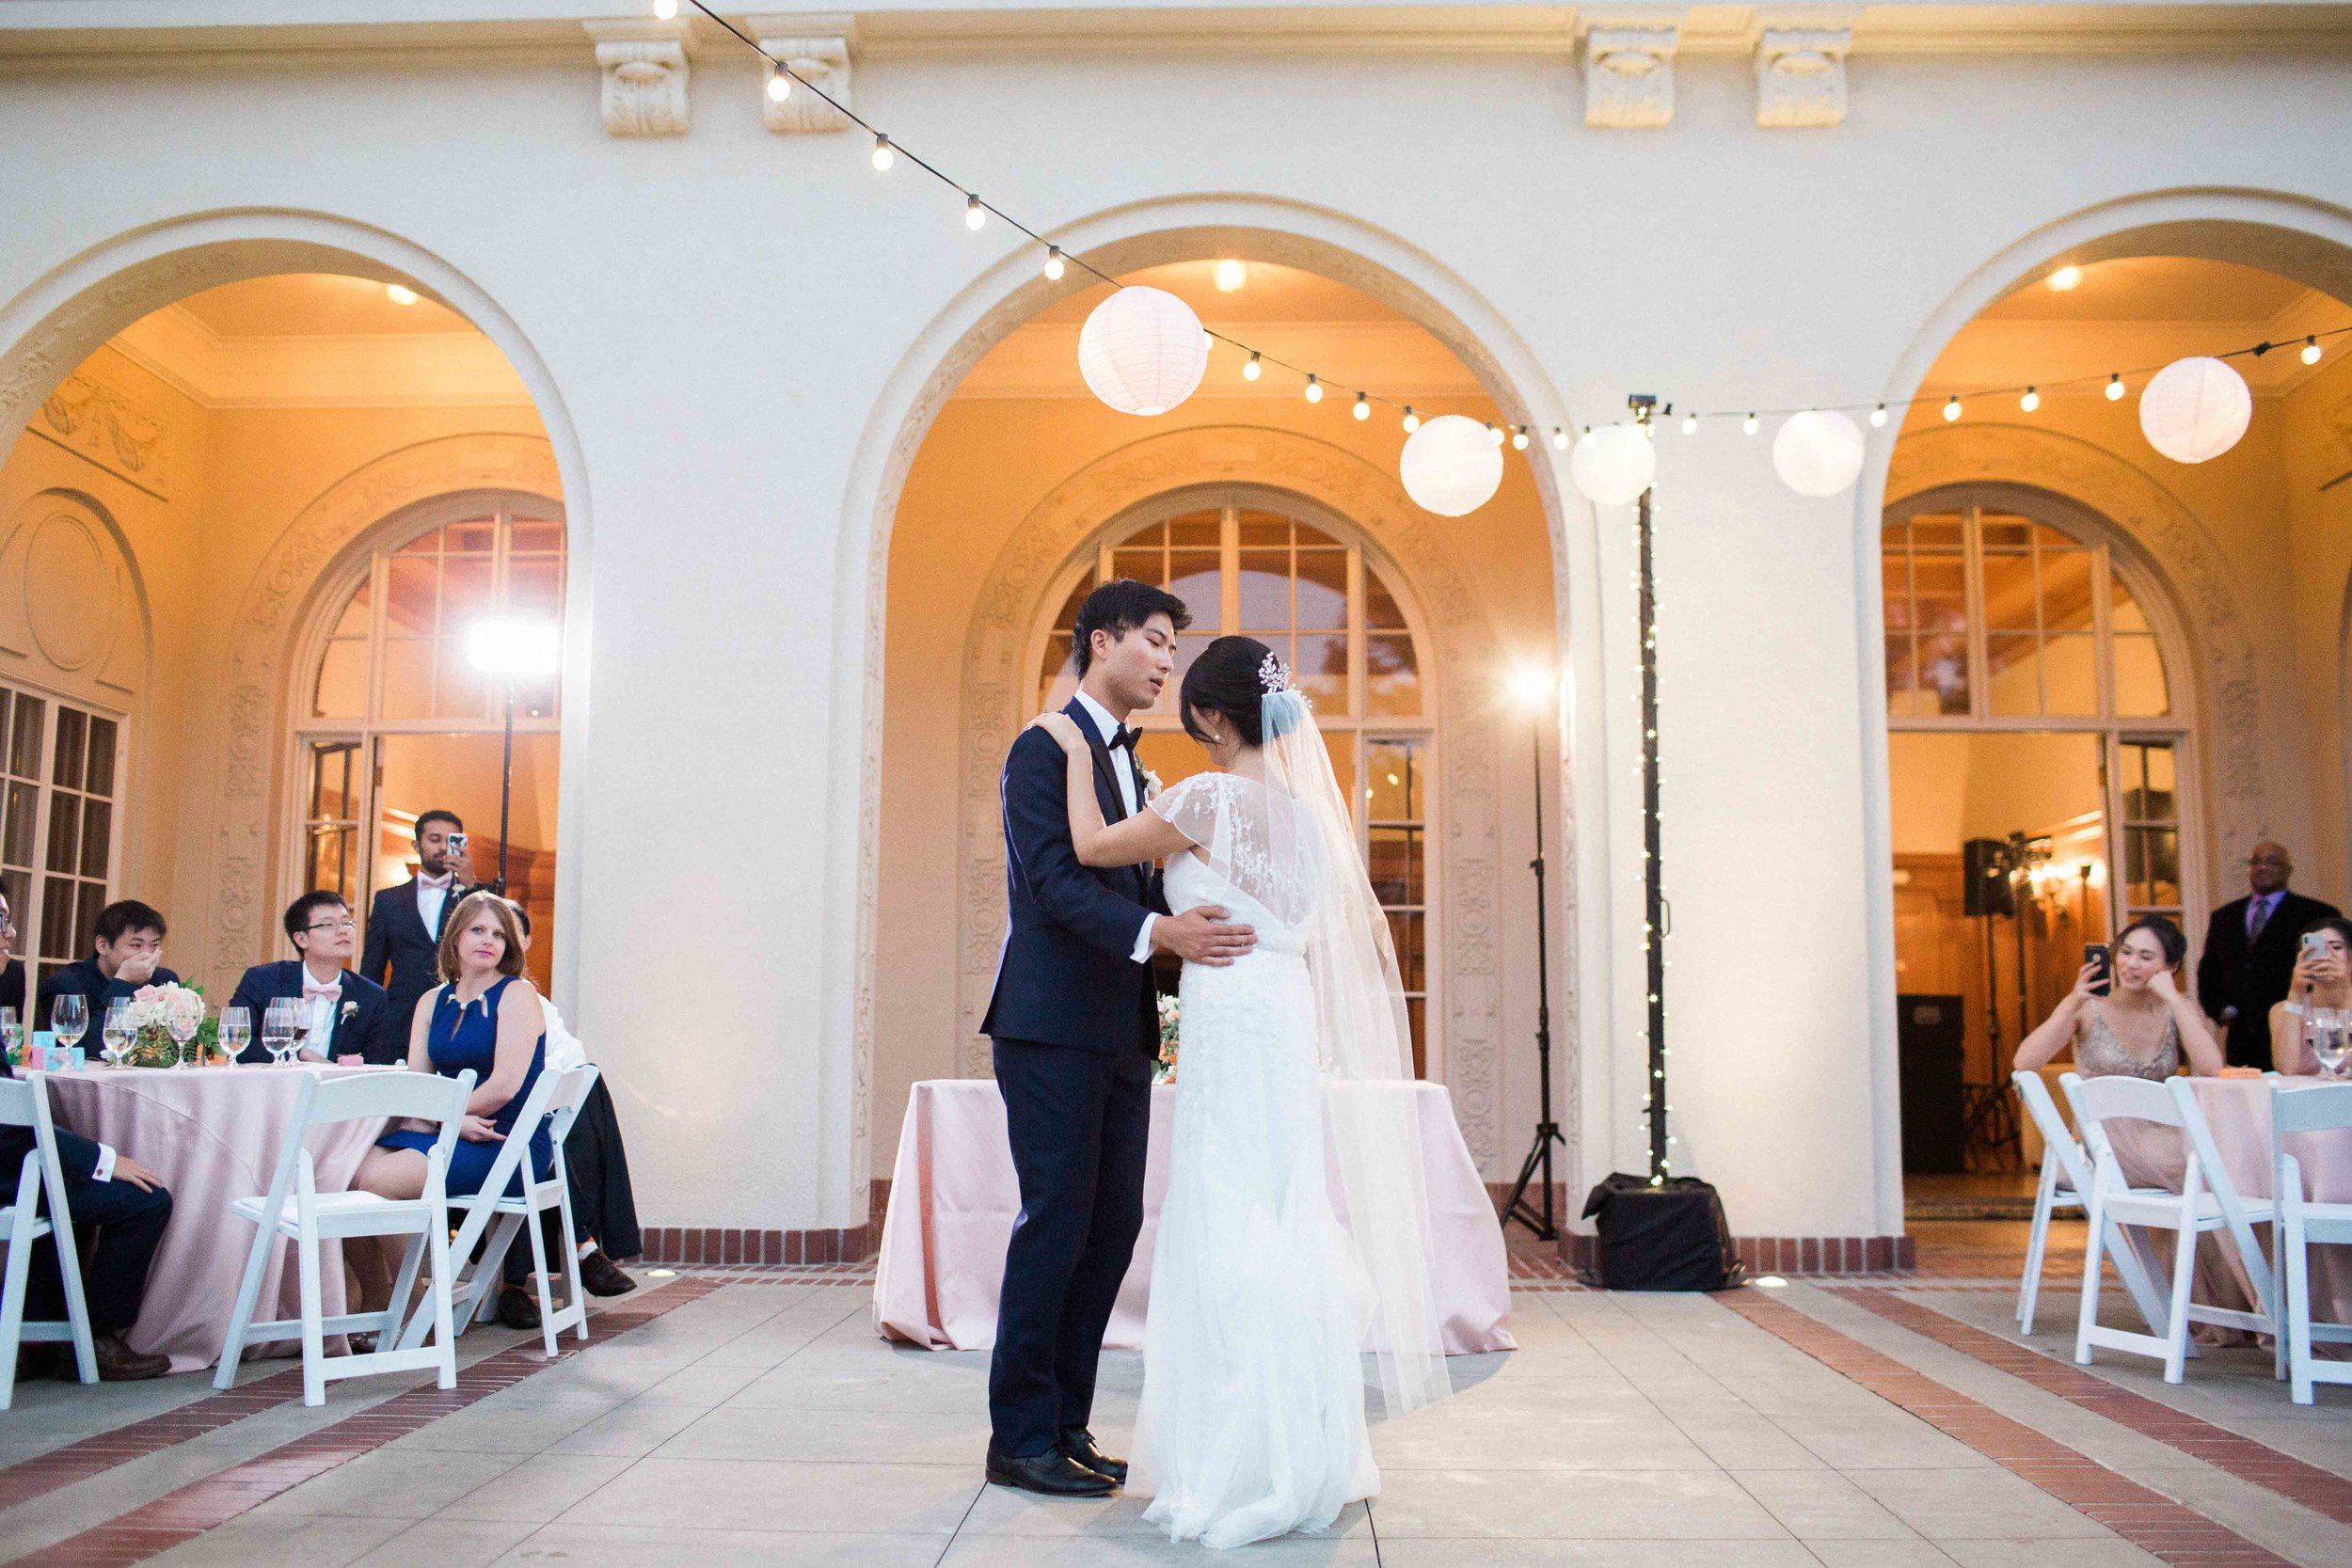 Villa_Montalvo_Wedding_Photographer_Videographer_San_Francisco182.jpg